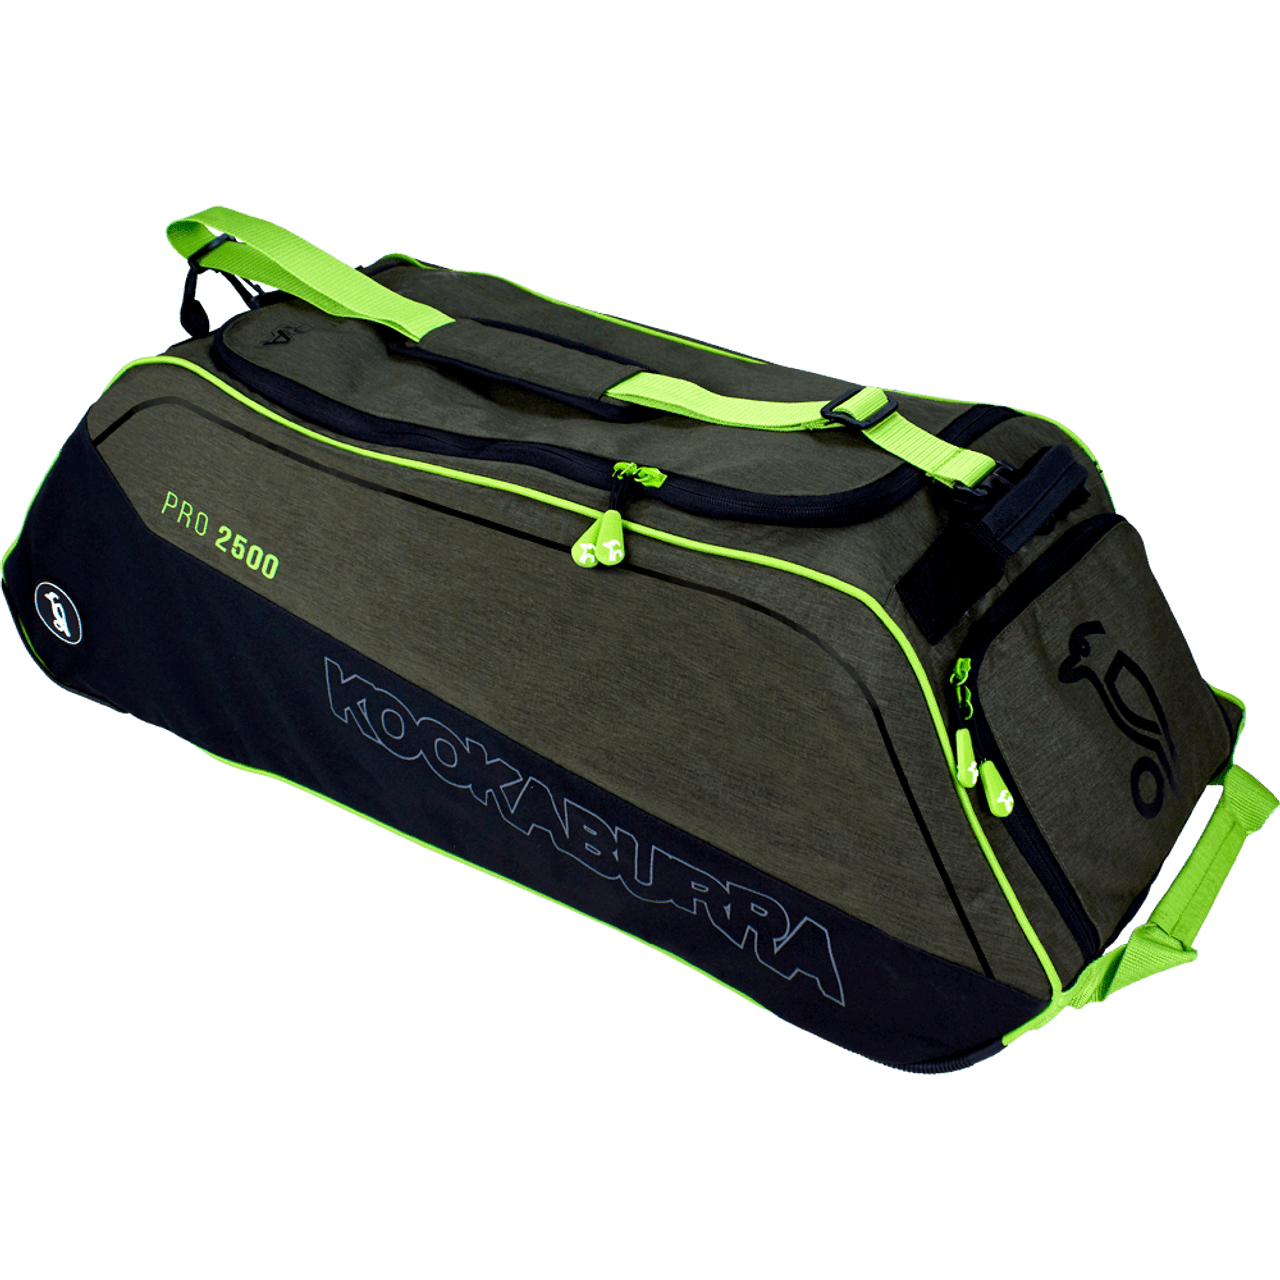 344fe1206 Kookaburra Pro 2500 Wheelie Cricket Kit Bag - Khaki 2019